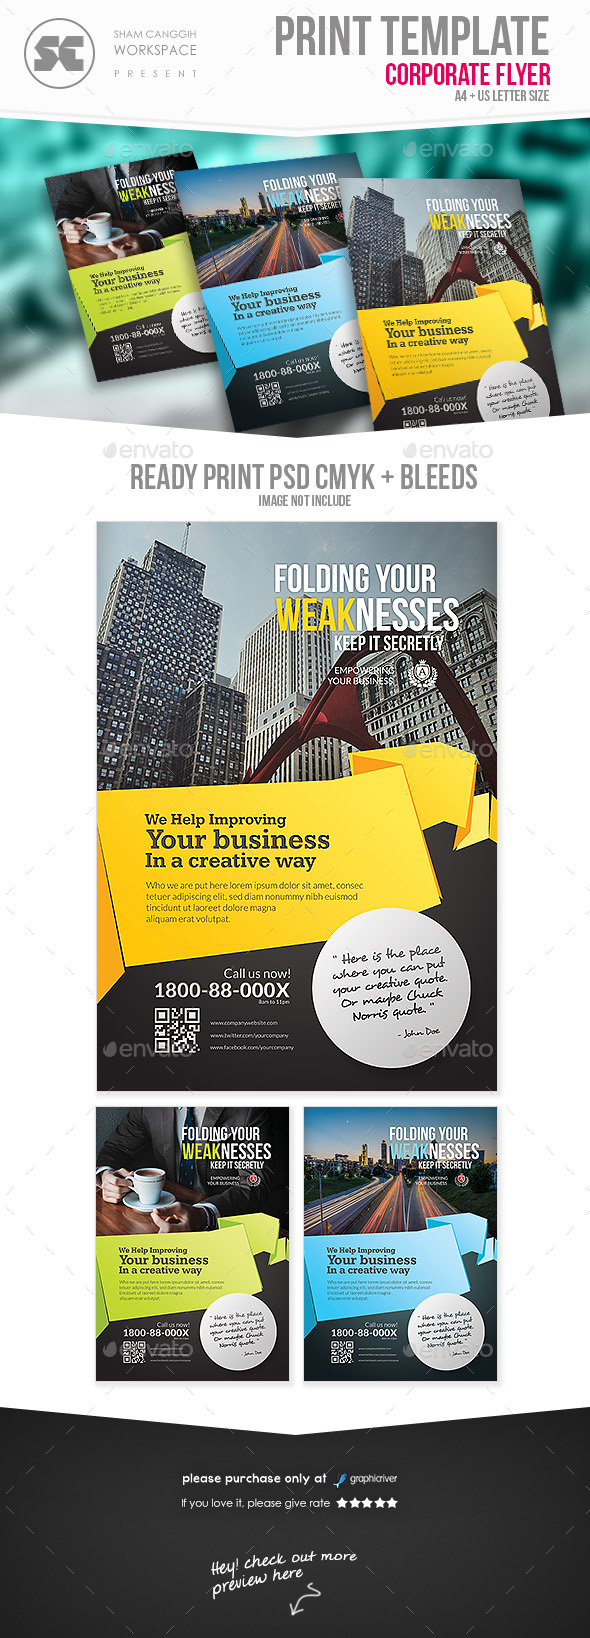 Clean & Modern Corporate Flyer/Magazine Ads - Corporate Flyers